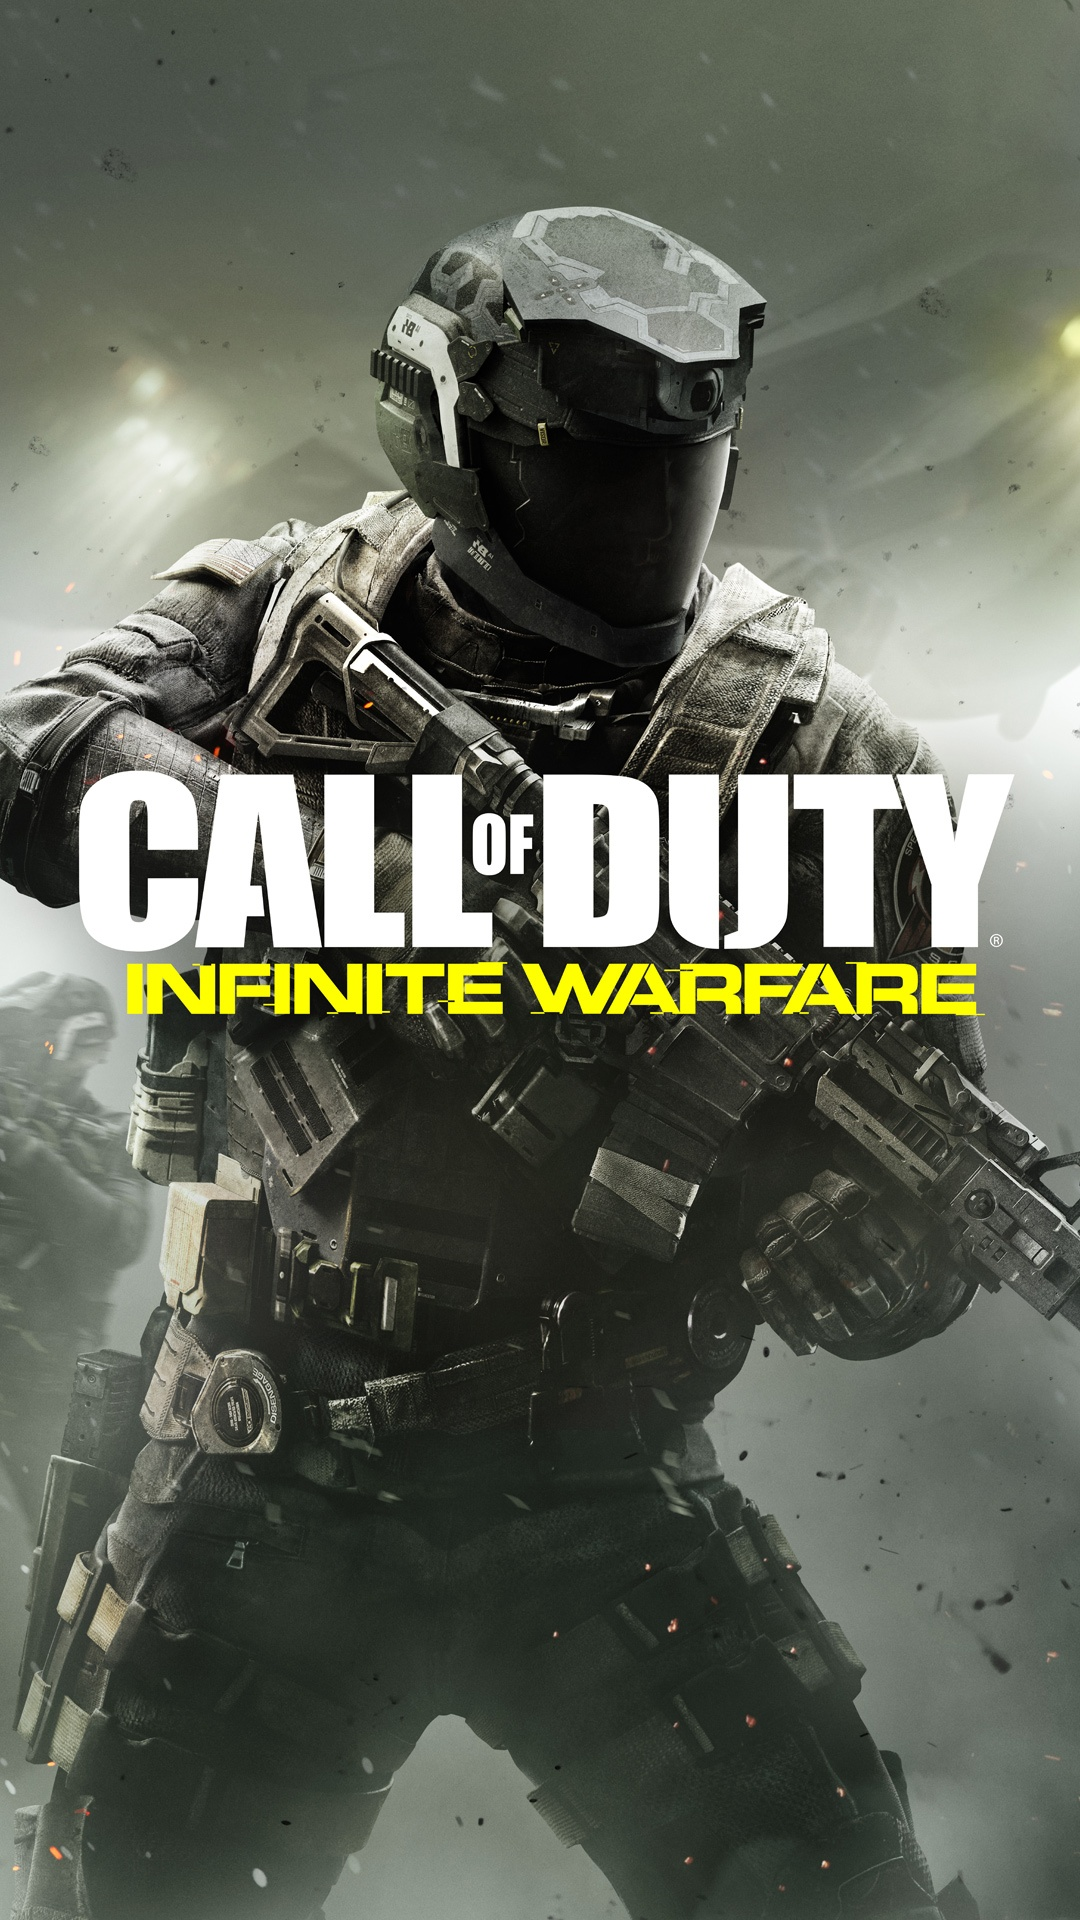 call of duty infinite warfare game wallpapers in jpg format for free